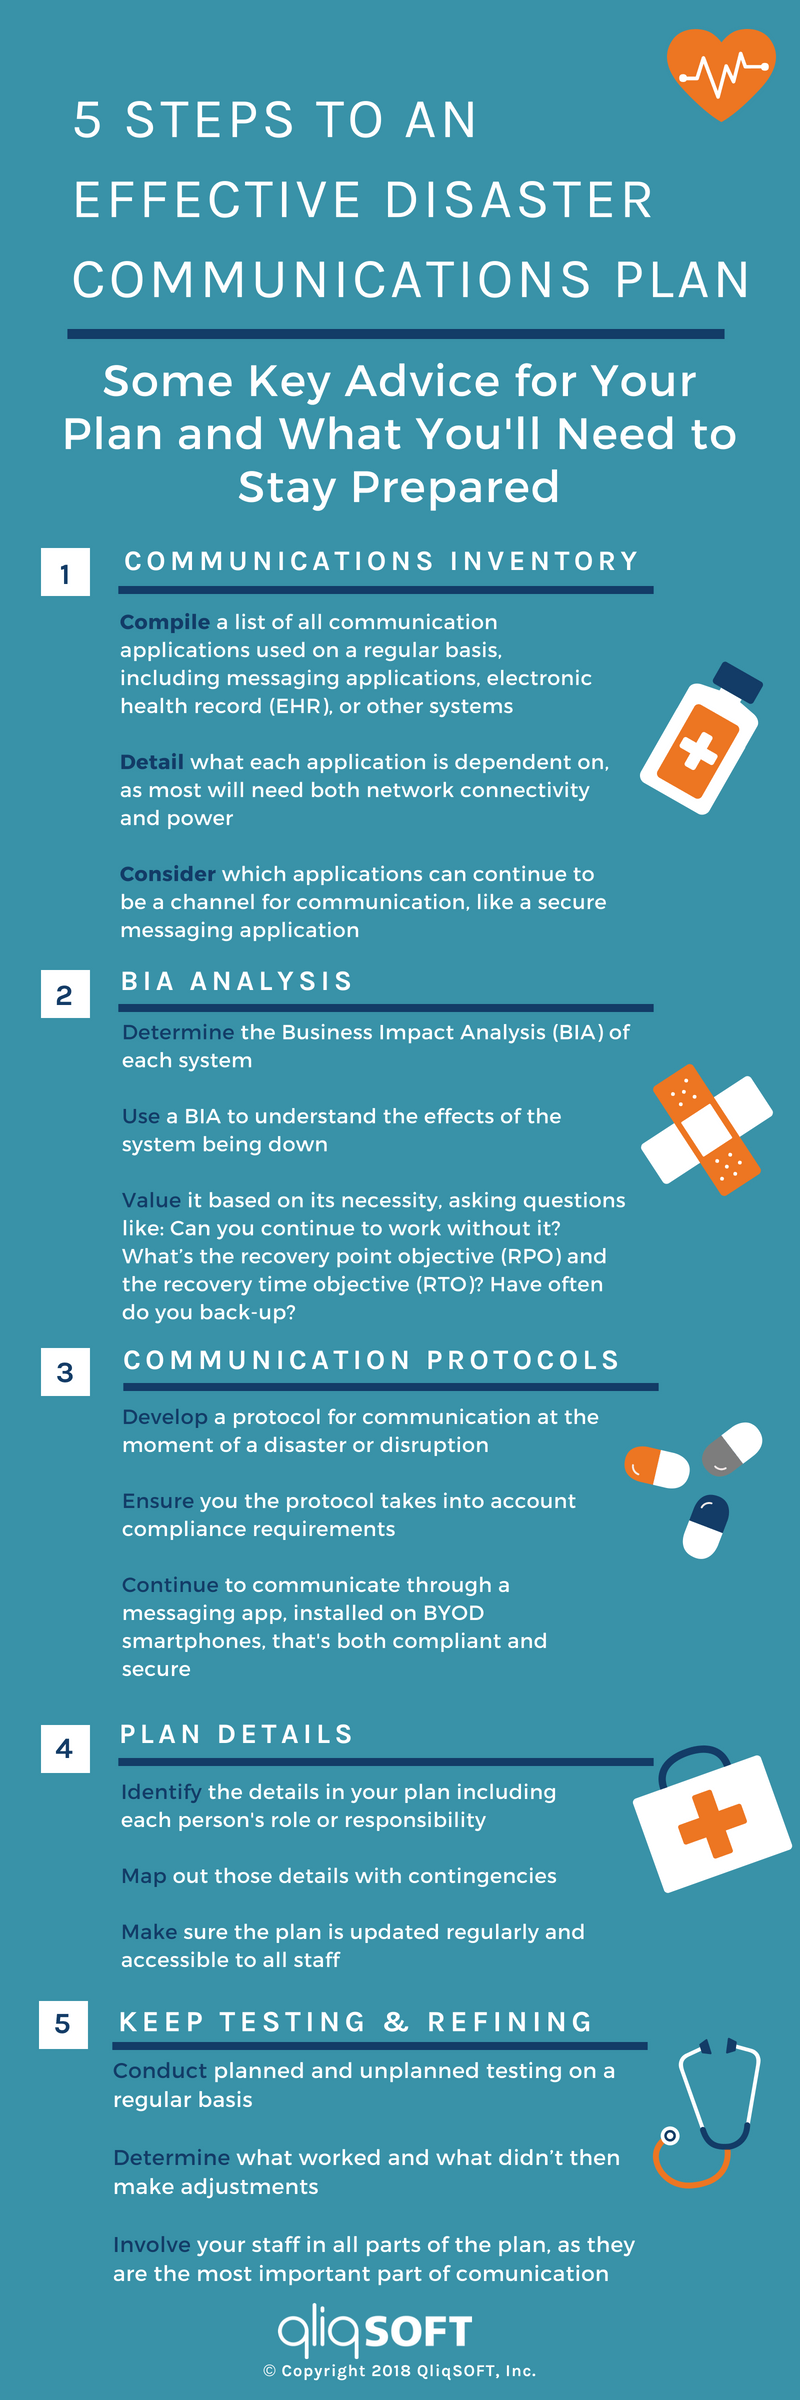 5-steps-to-effective-disaster-communication-plan-infographic